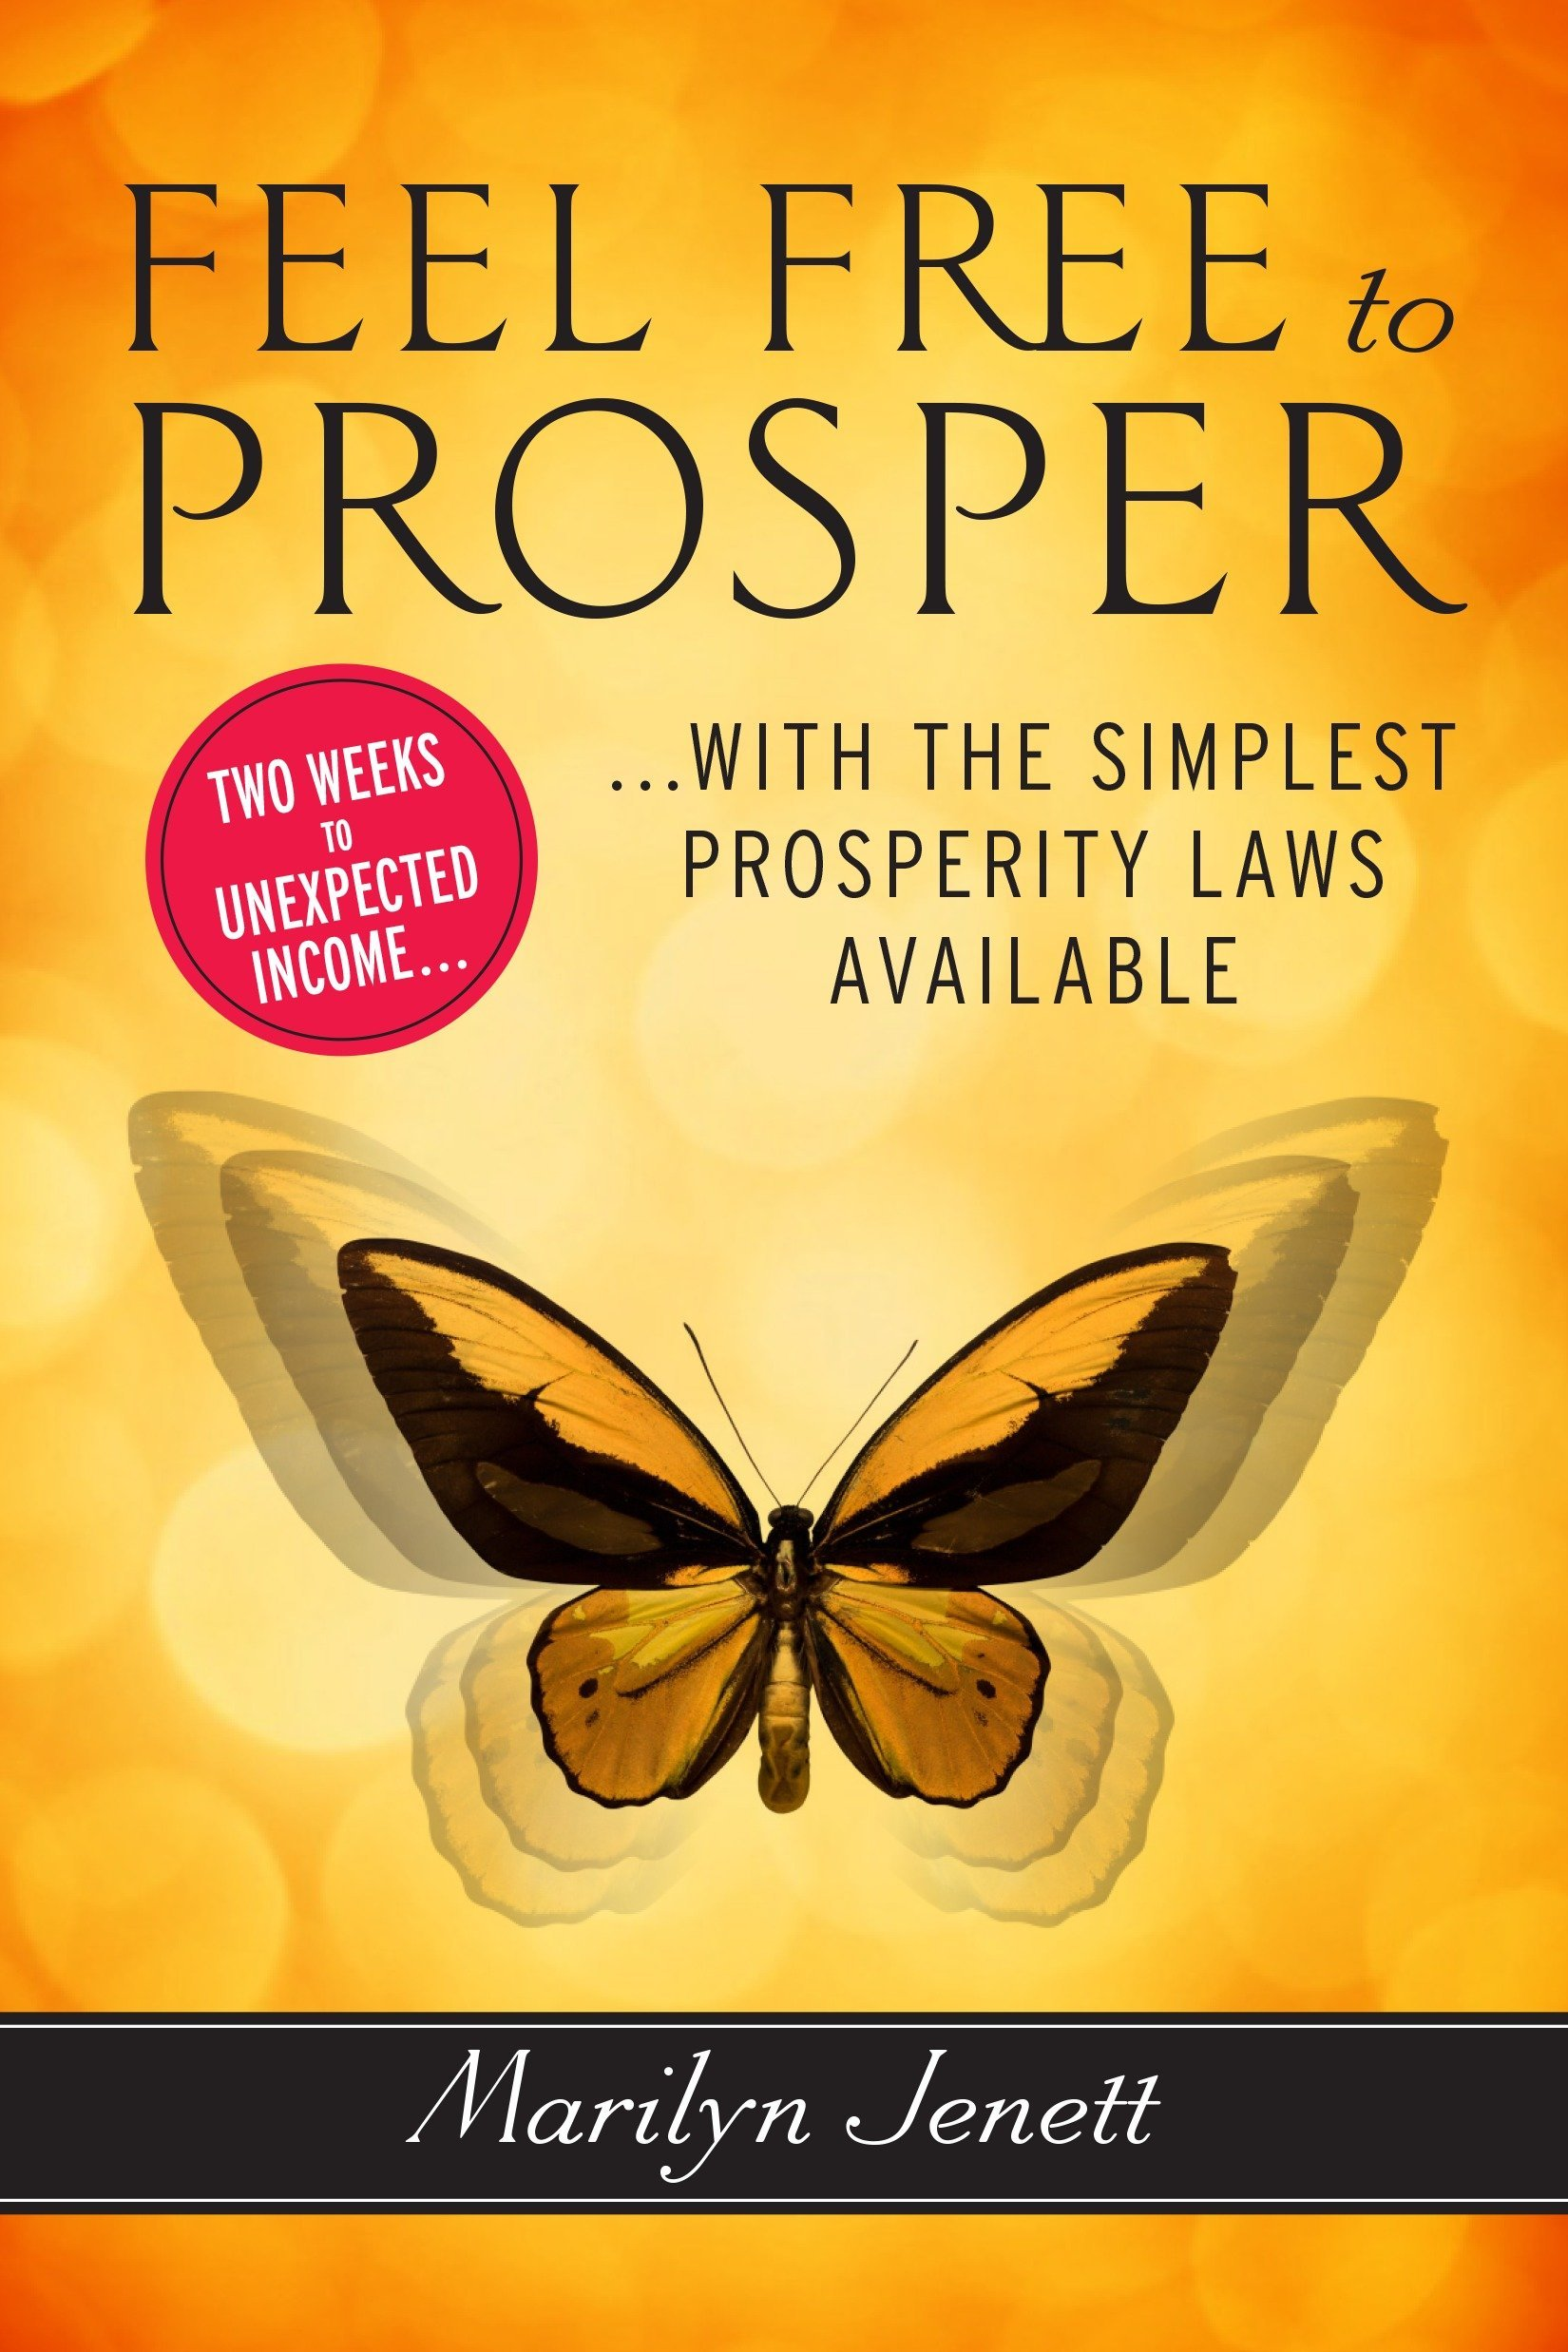 Download Feel Free to Prosper: Two Weeks to Unexpected Income with the Simplest Prosperity Laws Available PDF